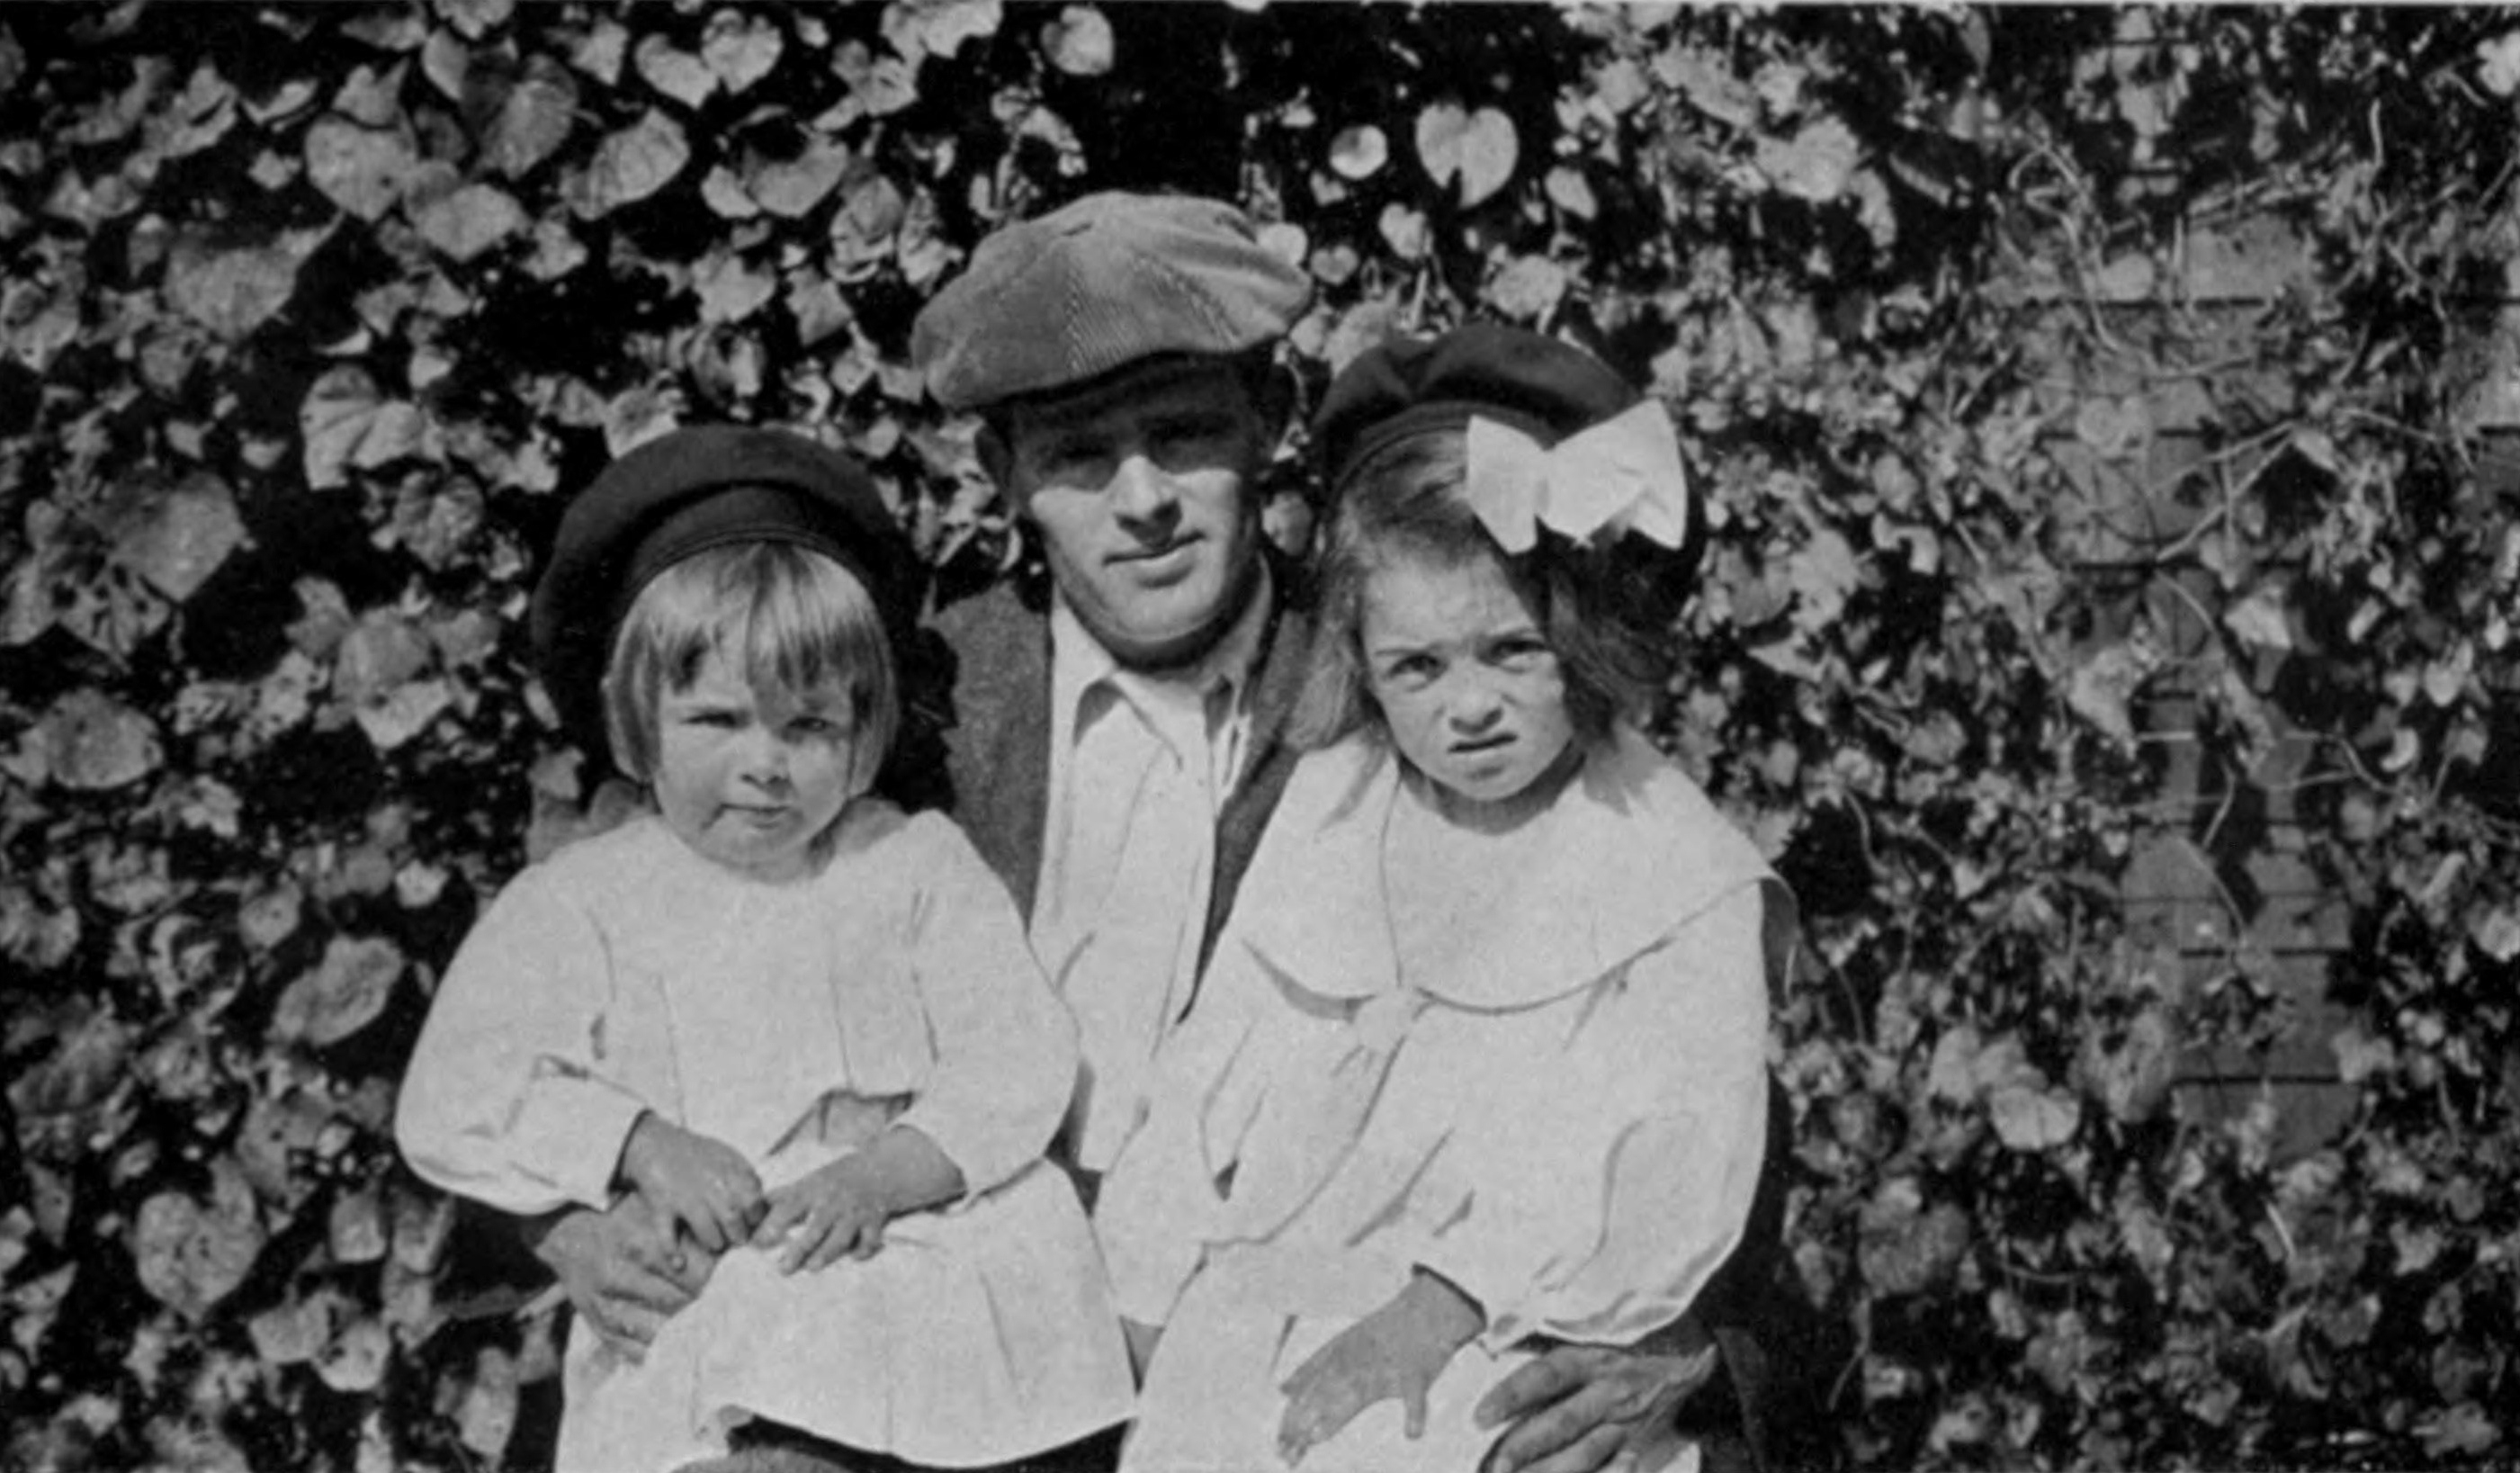 a biography of jack london an american writer Online literary criticism for jack london a selective list of online literary criticism for the nineteenth-century american novelist and short story writer jack london, favoring signed.